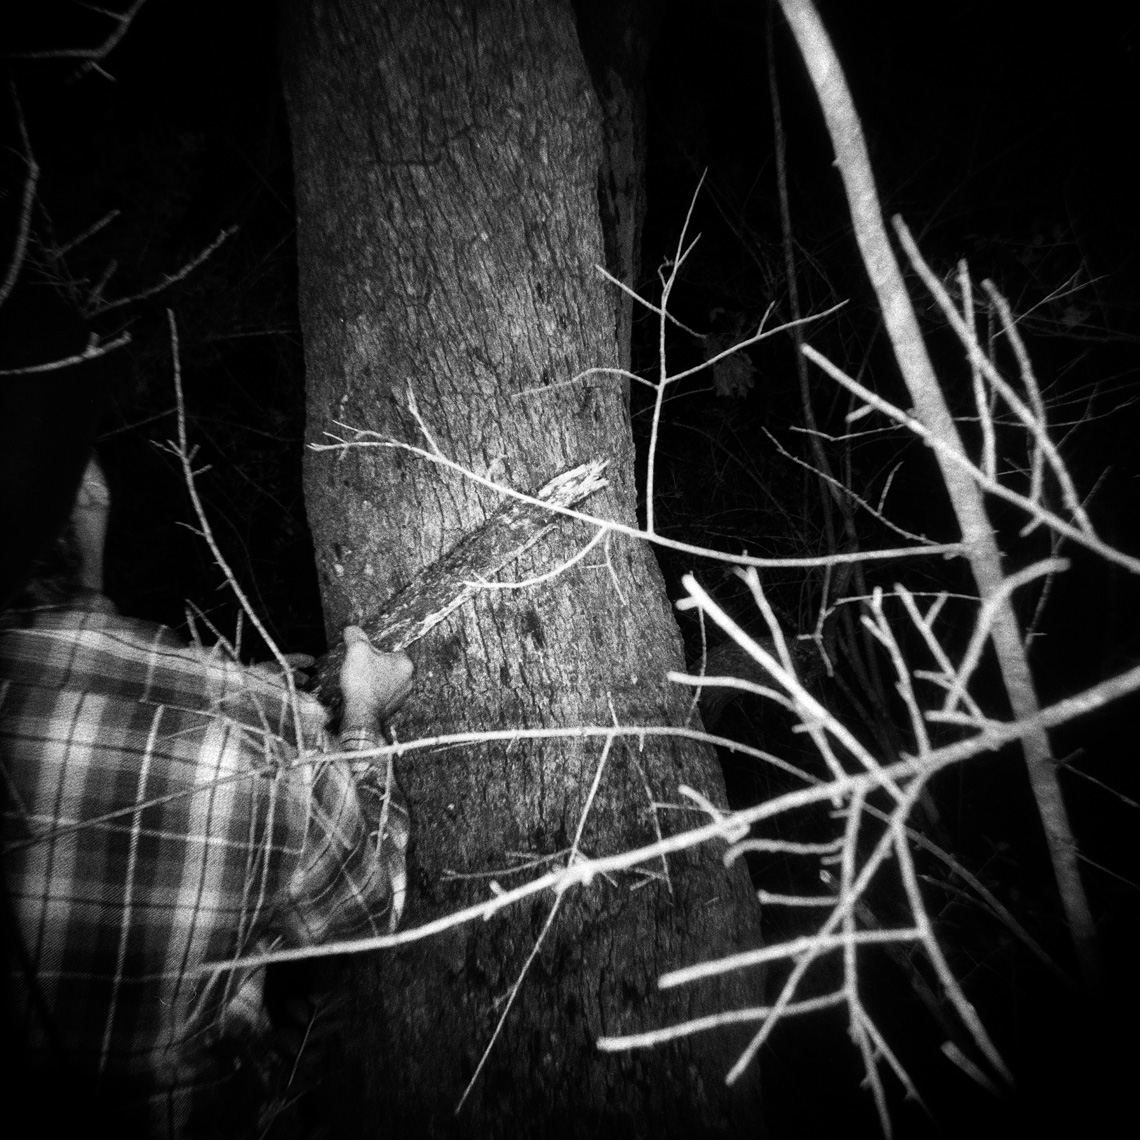 thibodeaux_brandon_texas_coon_hunting_night_sport_003.jpg